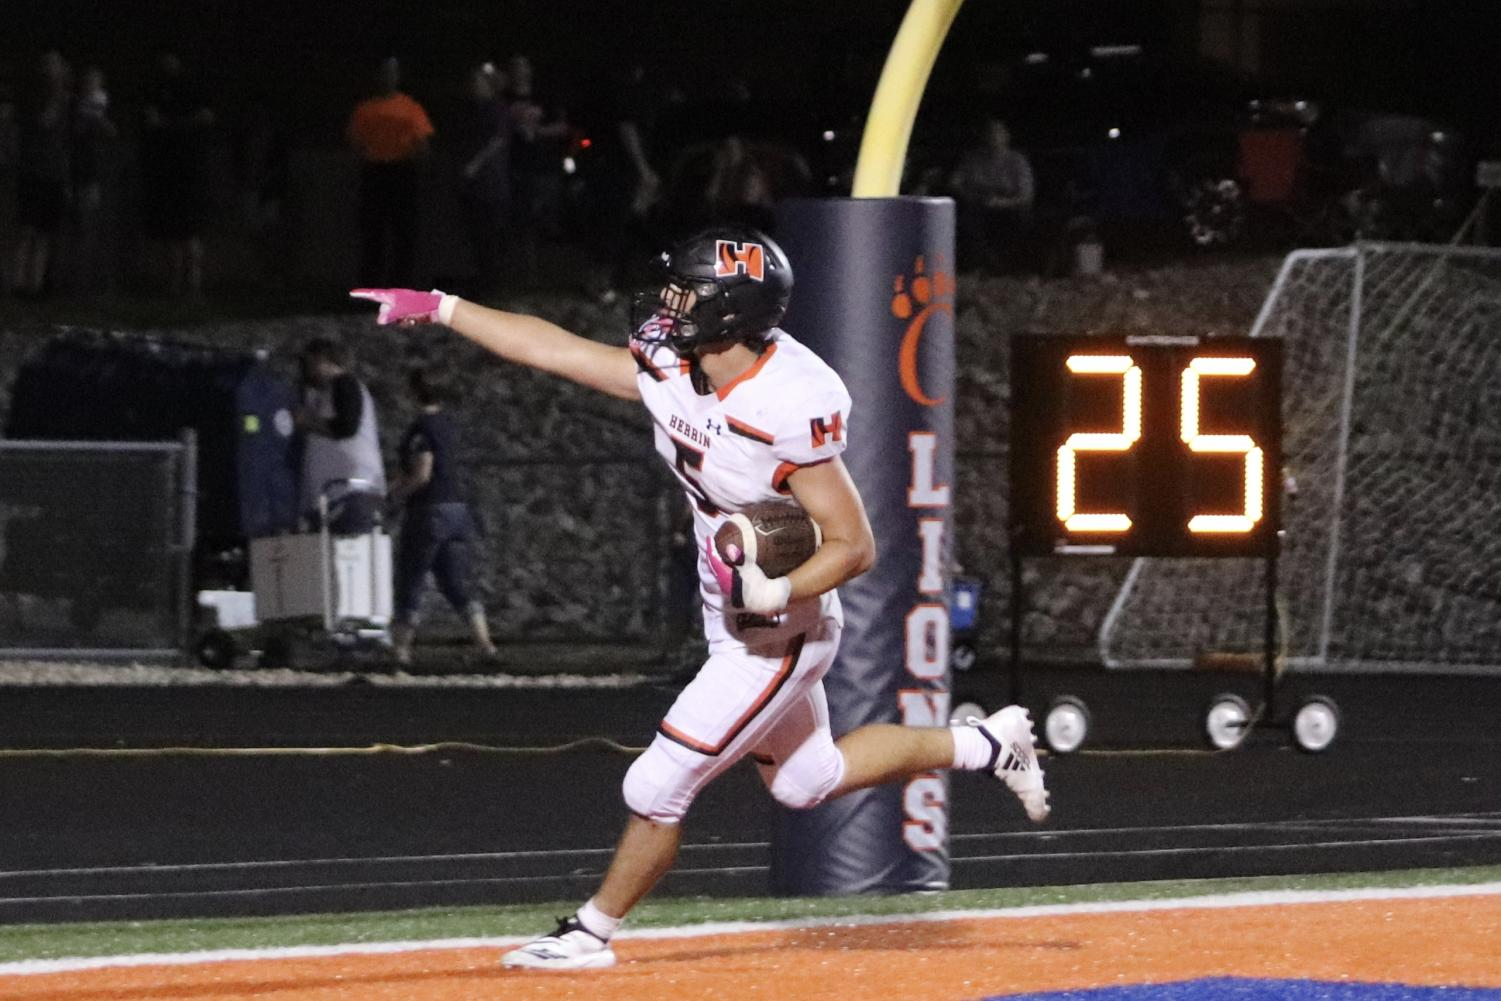 Cameron Damico (12) points to the student section after a phenomenal touchdown against Carterville.